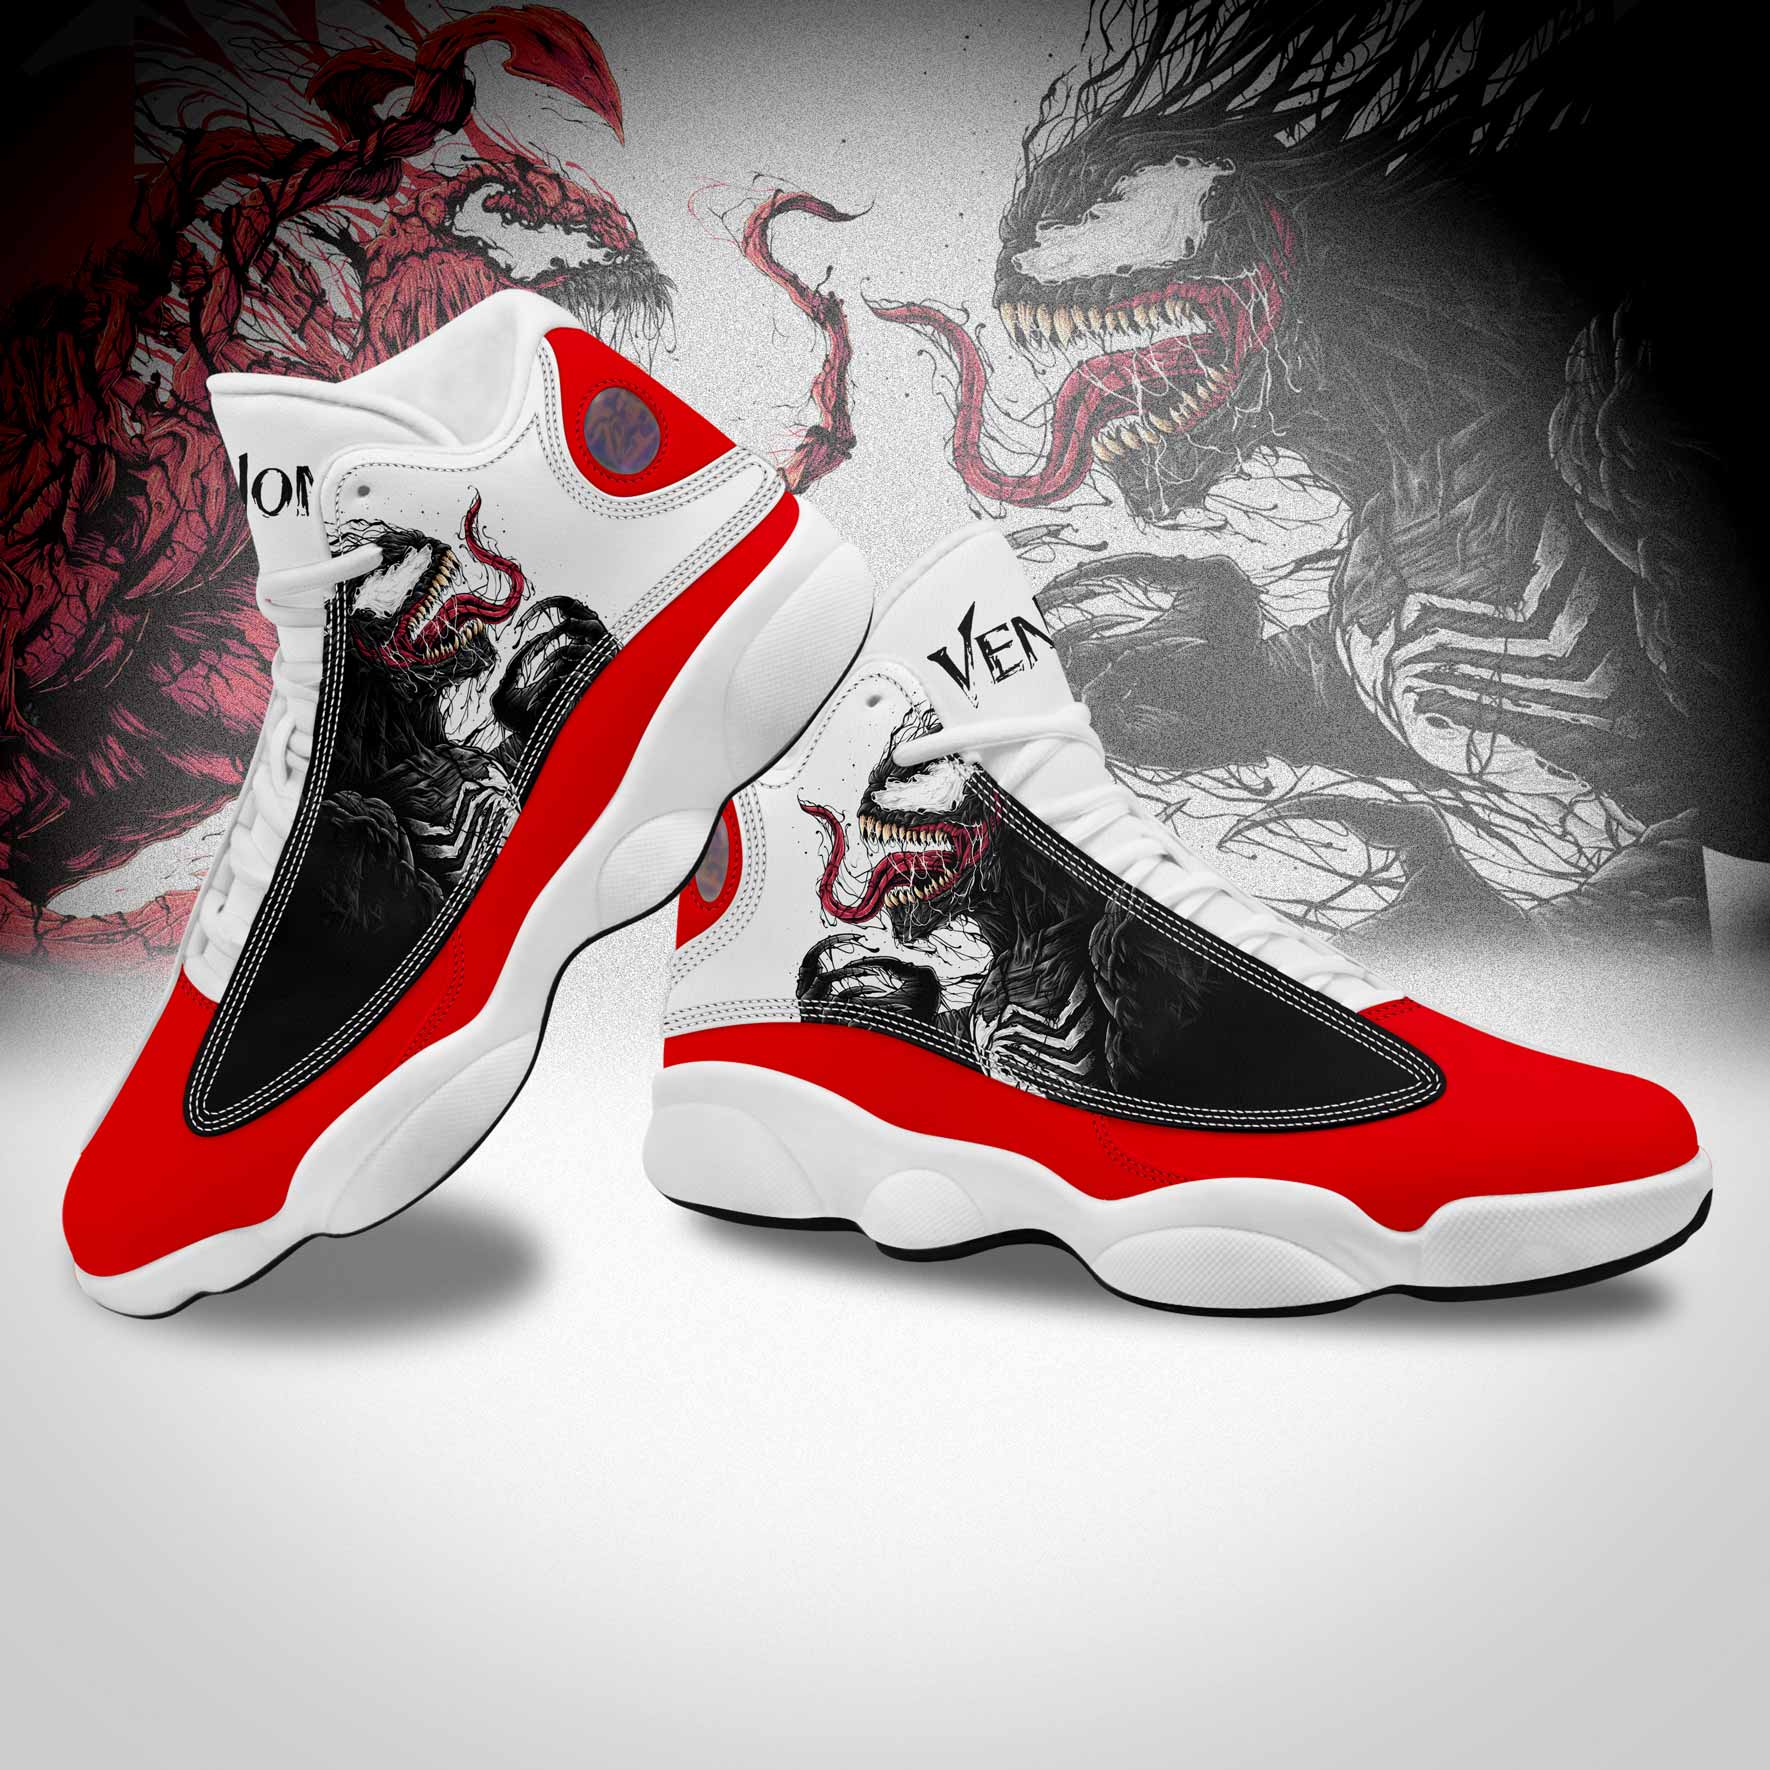 Custom Leather Material Basketball Sneakers for Men like Jordan 13